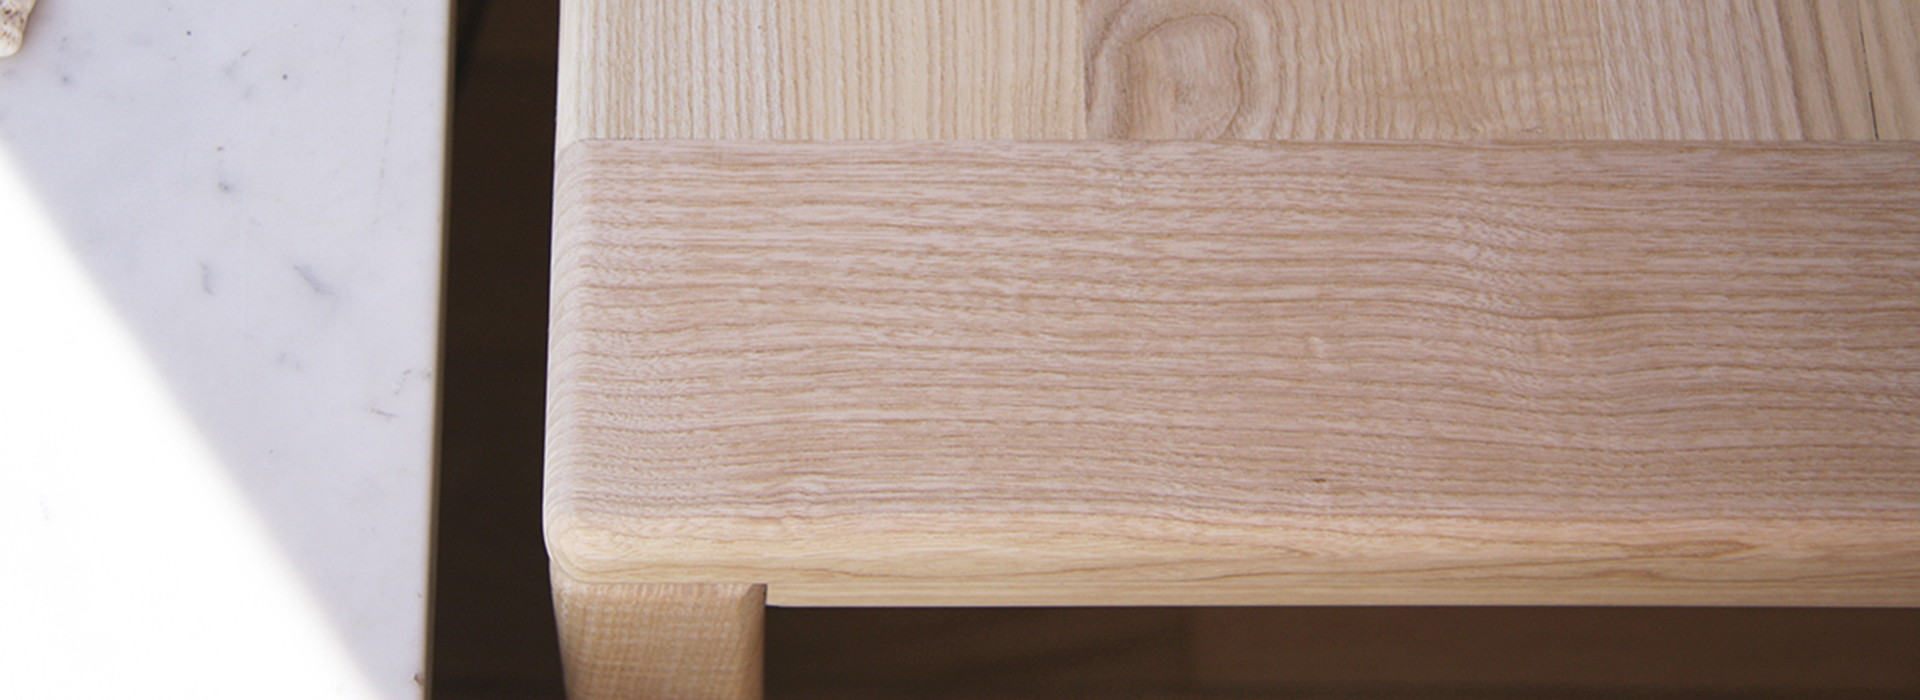 Nonjetable-About-Separator-Custom-Made-Desk